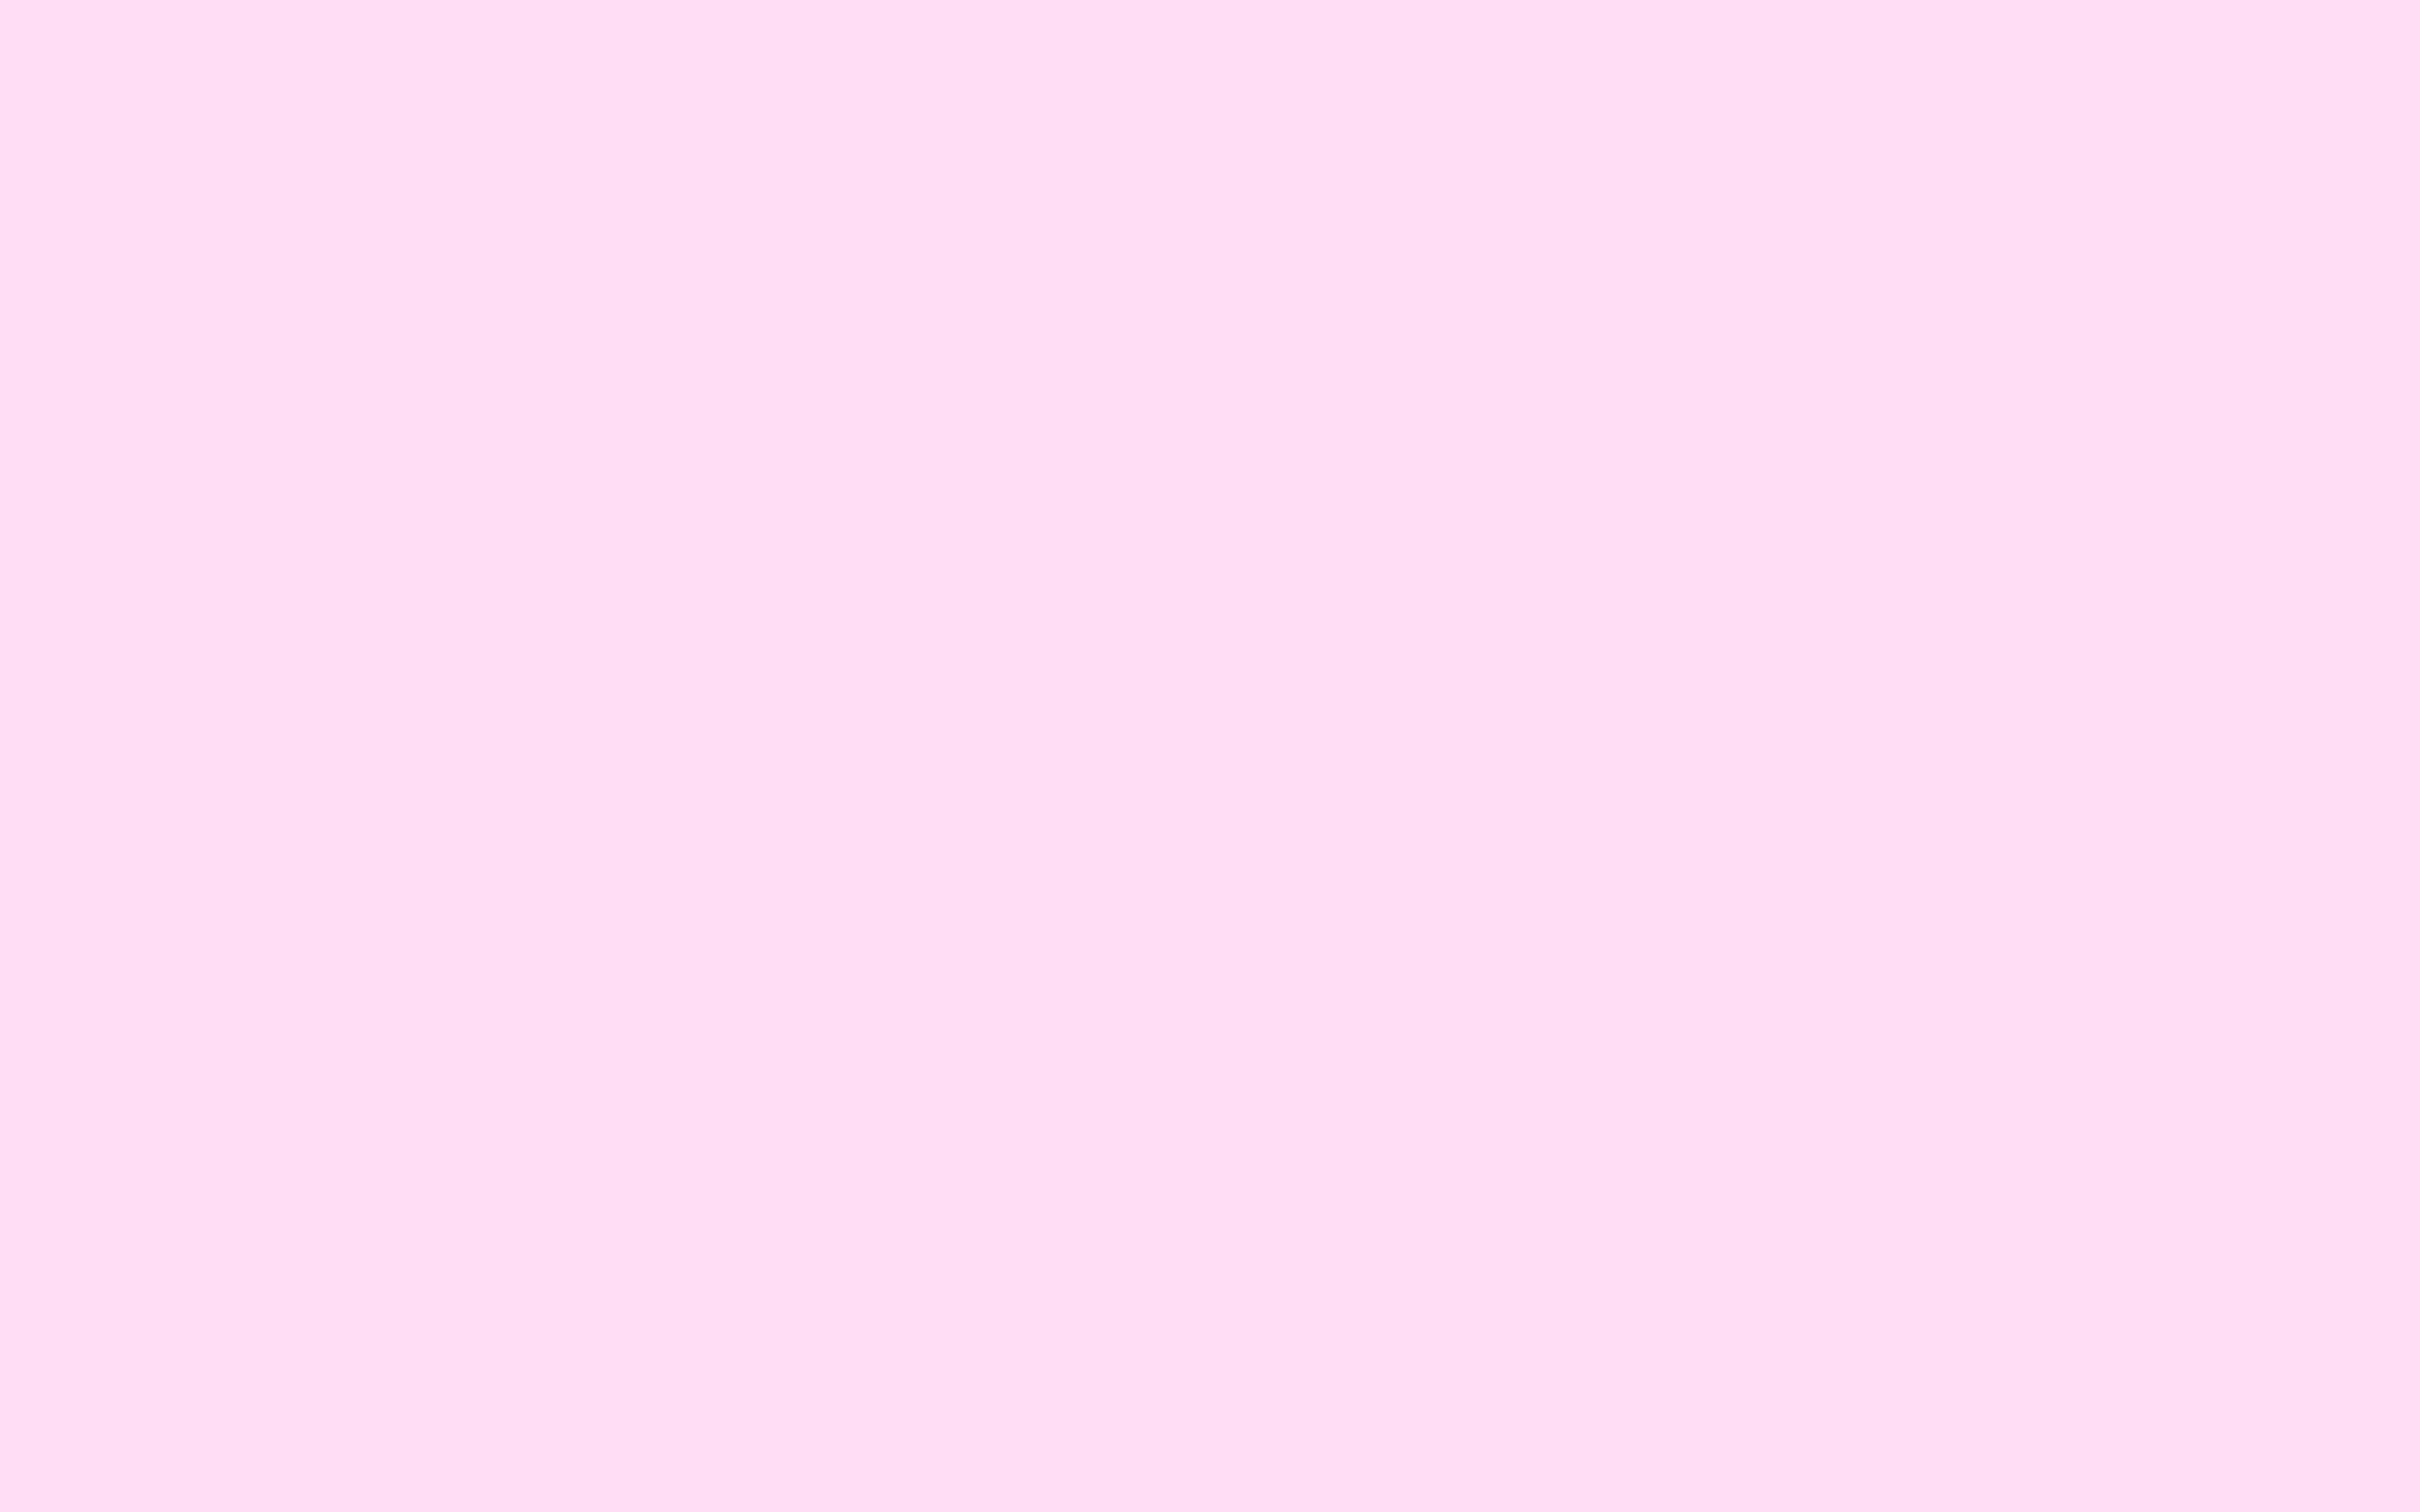 2560x1600 Pink Lace Solid Color Background